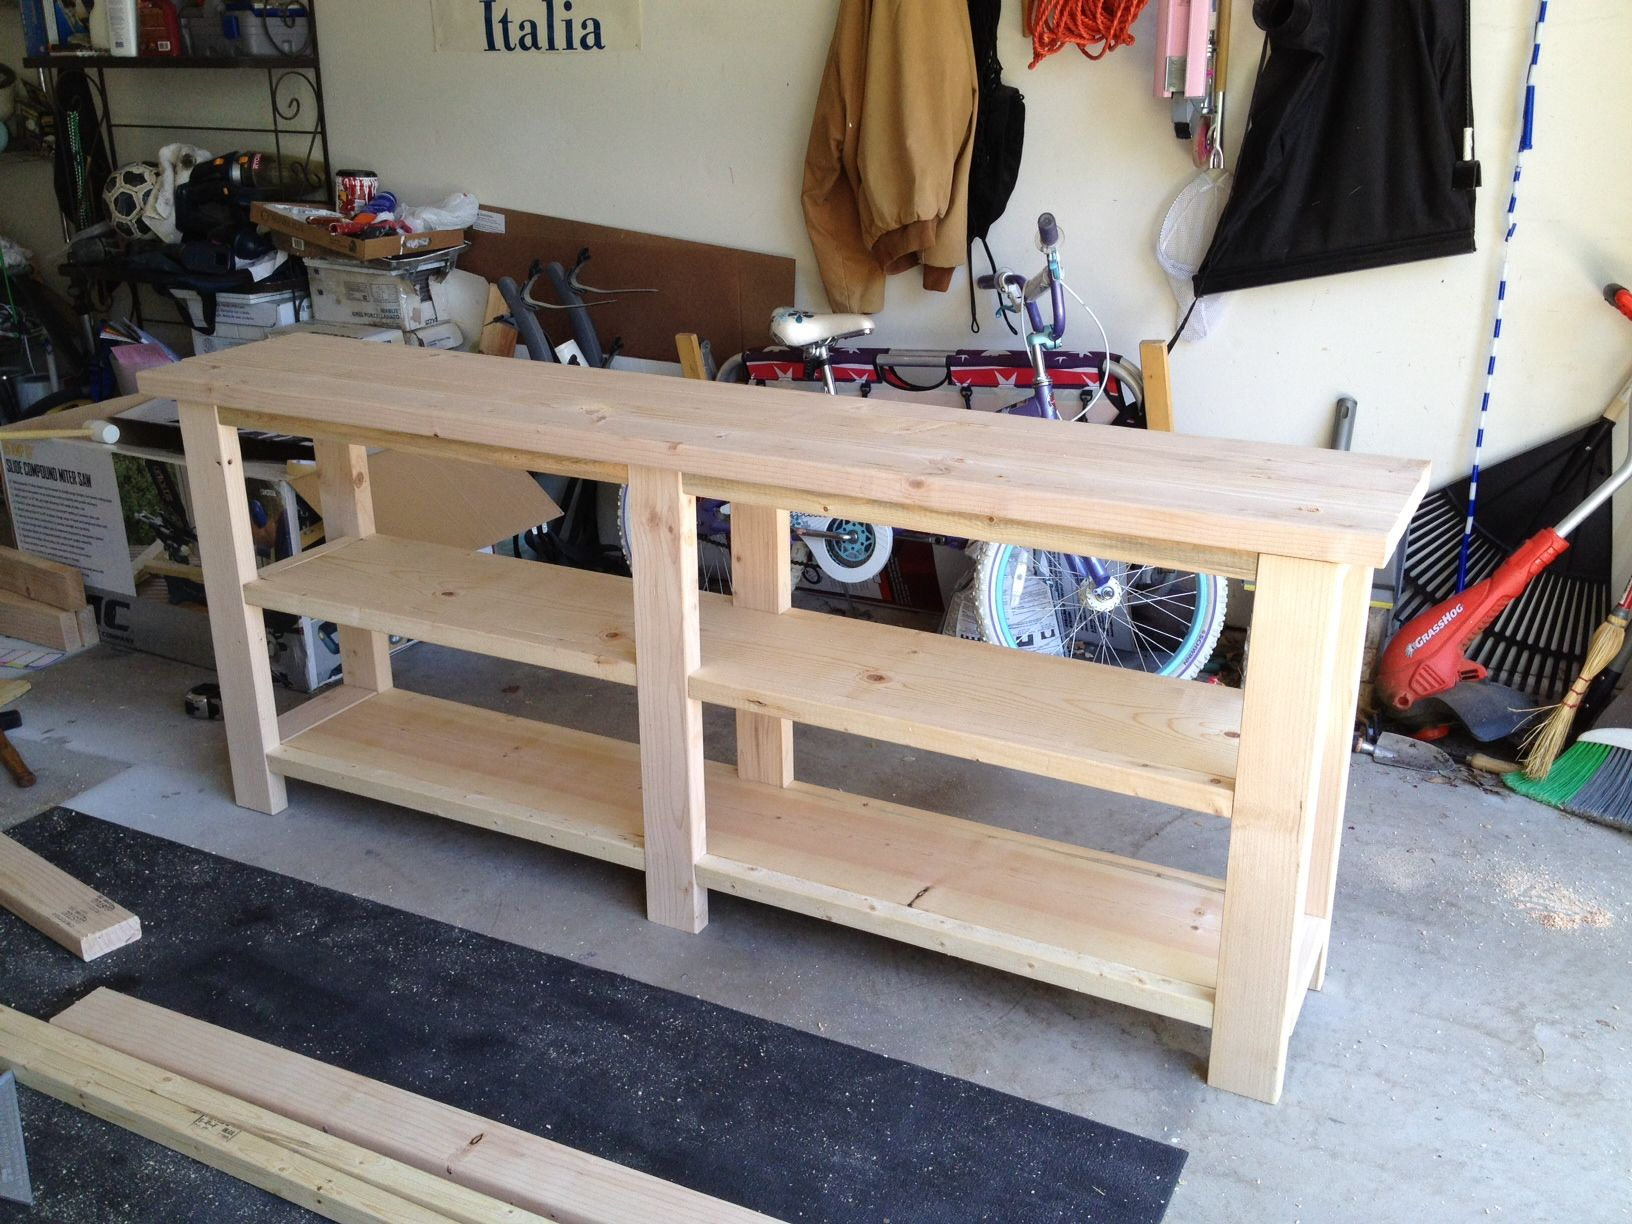 Build Sofa Table Plans Ana White DIY simple plywood dresser plans